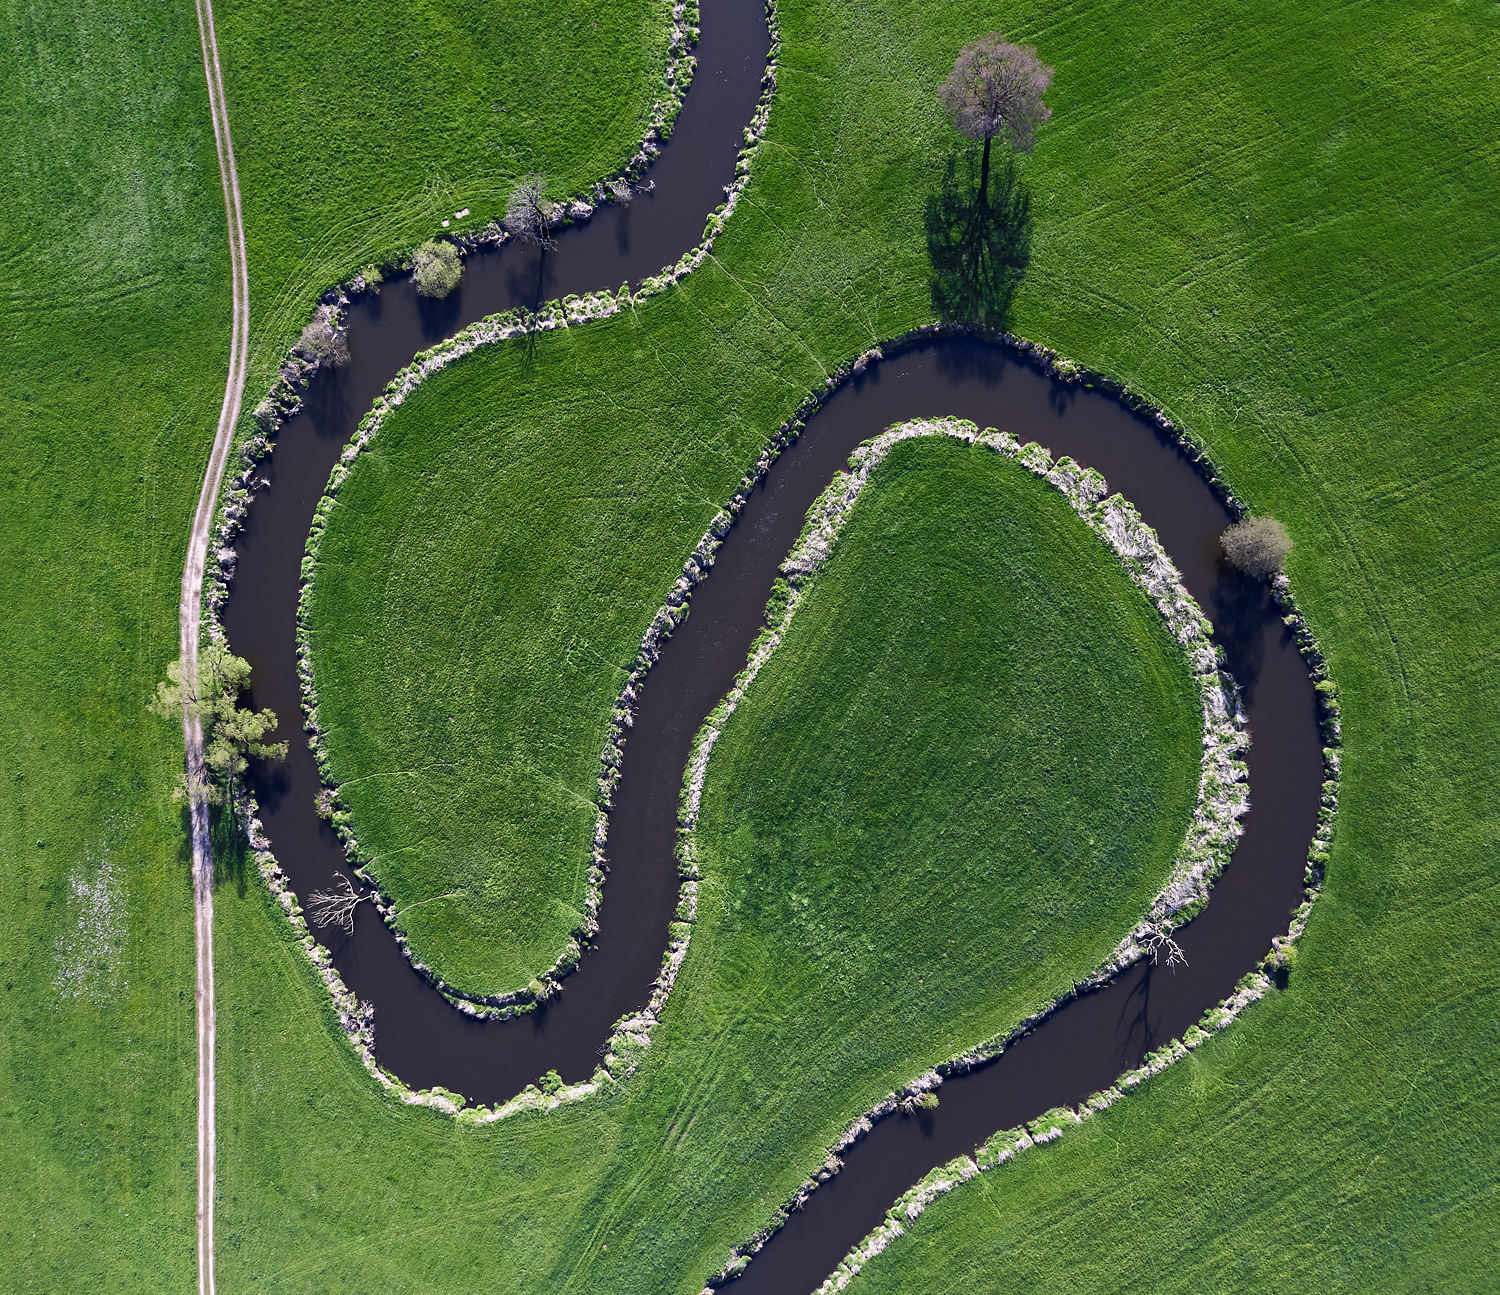 In Central Europe there are only very few rivers left that are allowed to freely meander.